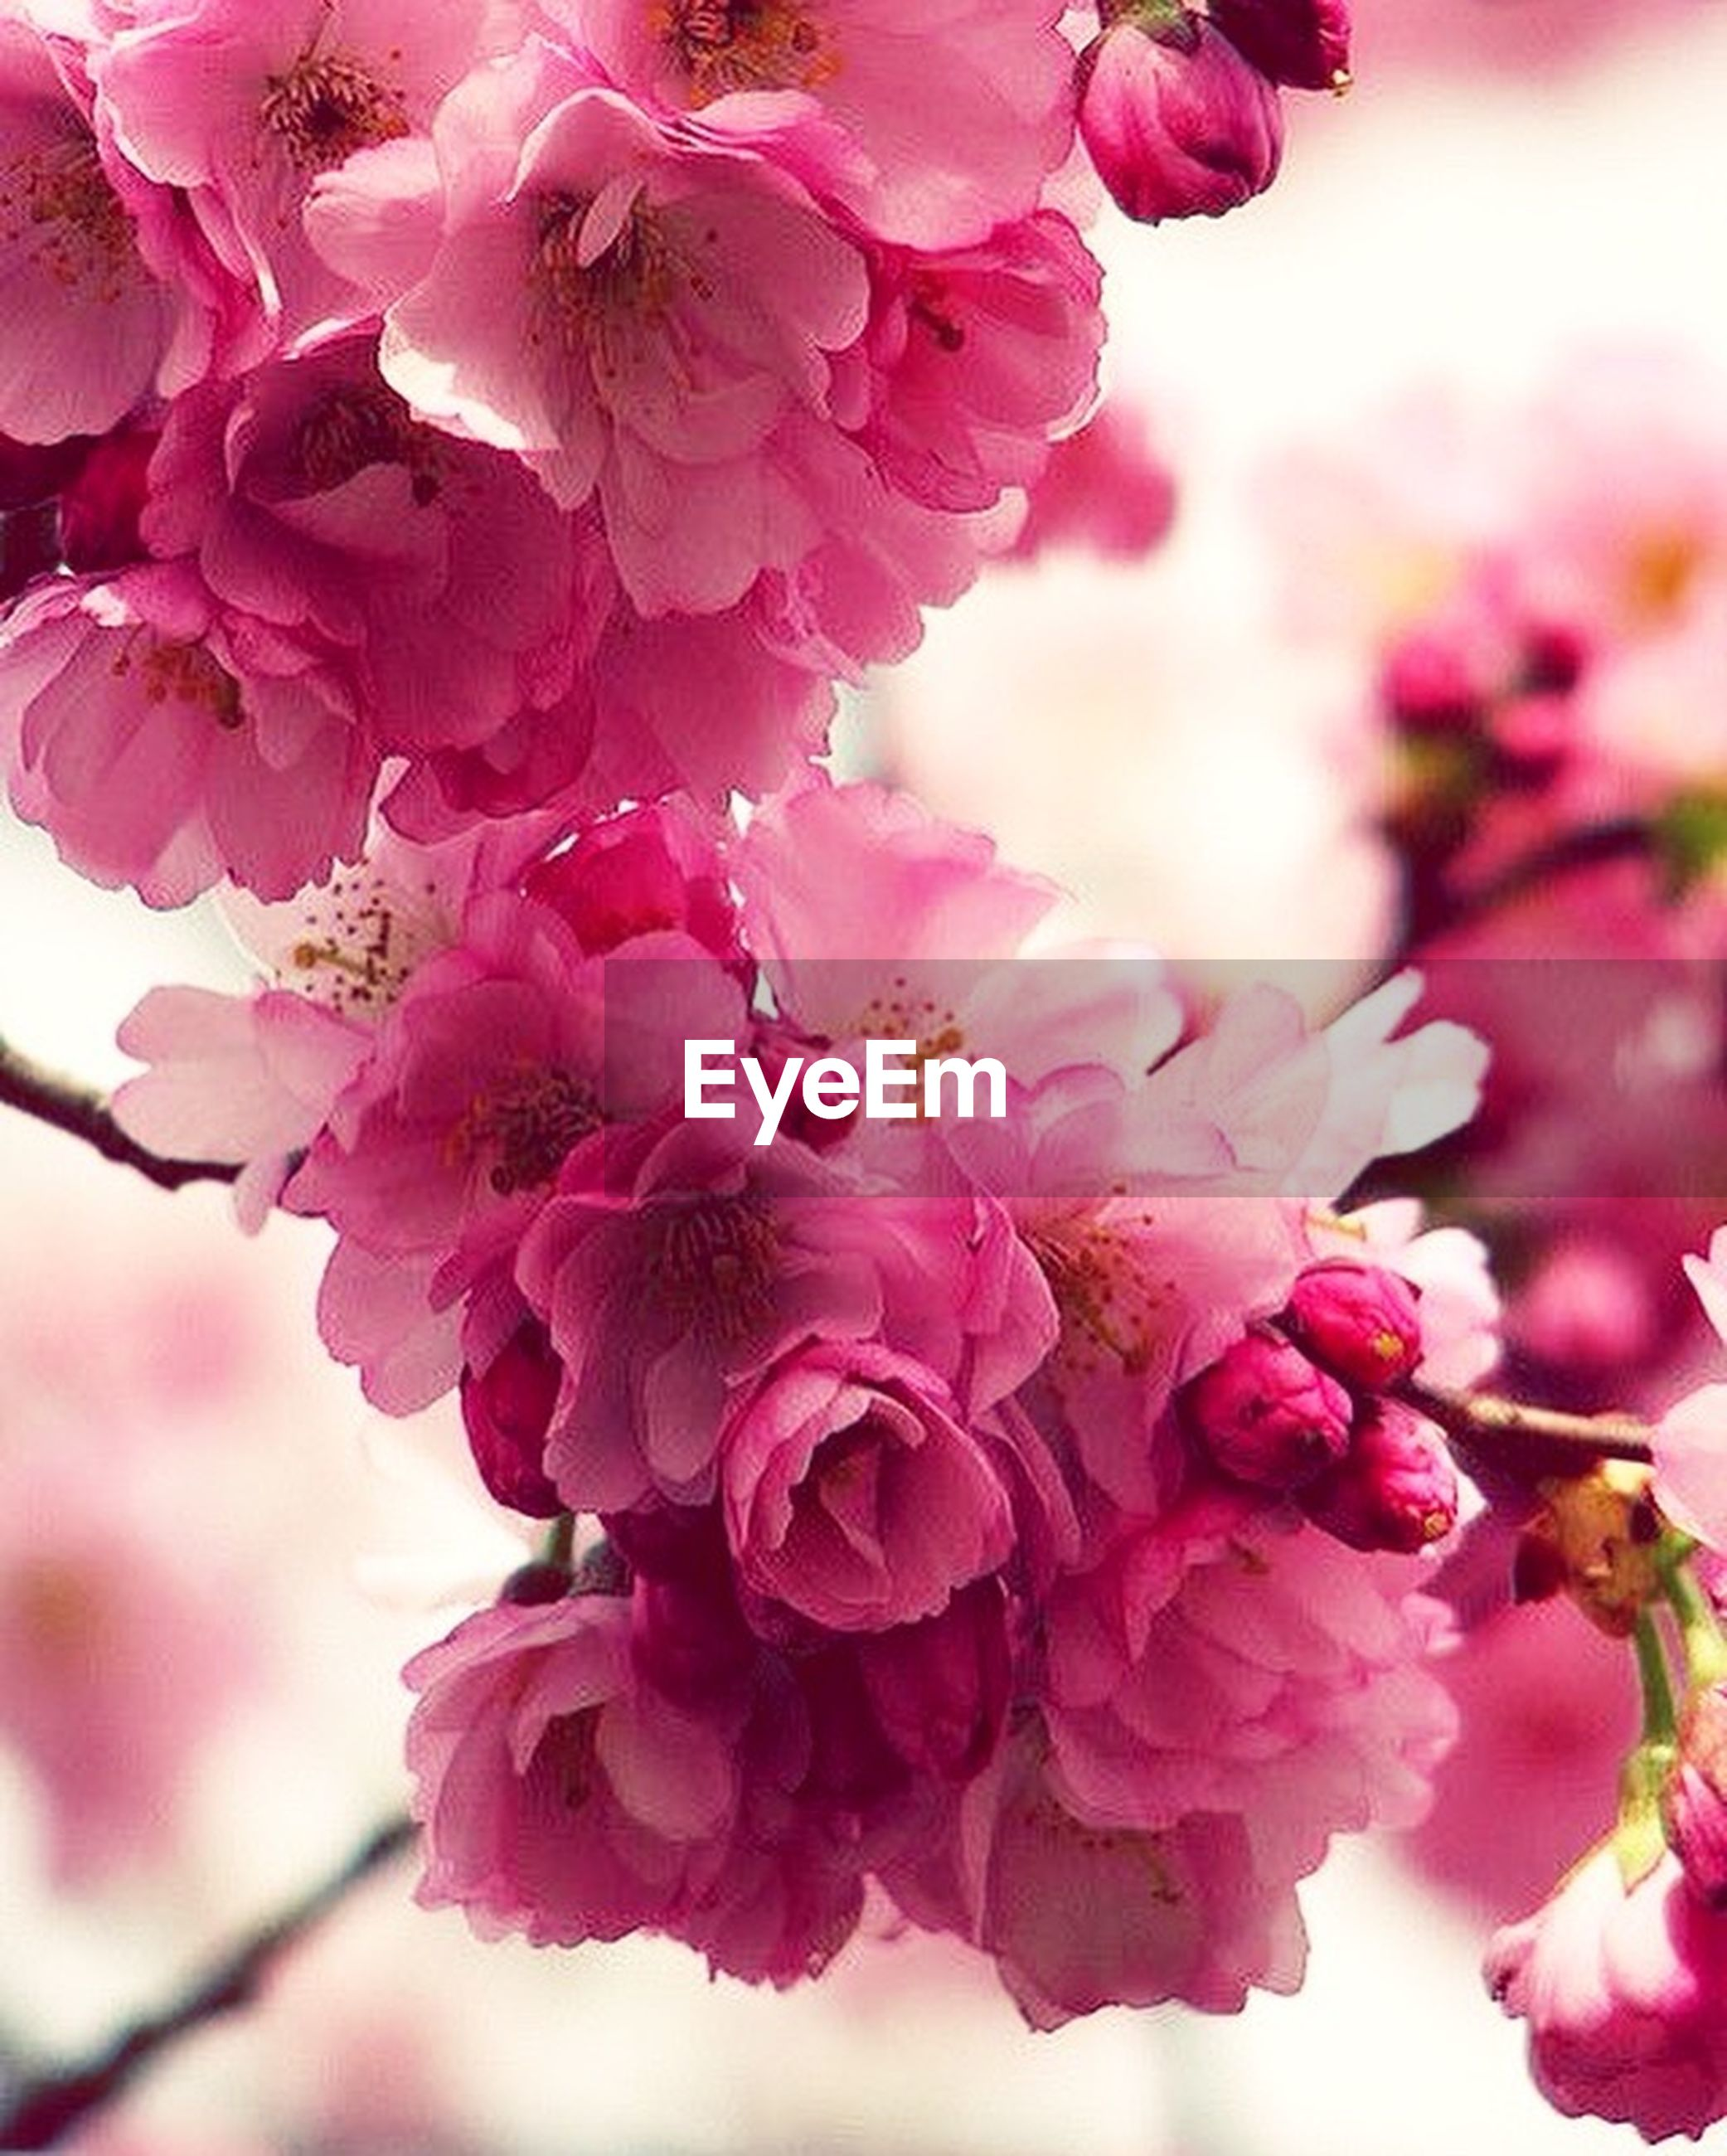 flower, freshness, pink color, fragility, beauty in nature, growth, petal, close-up, nature, focus on foreground, flower head, blooming, blossom, in bloom, pink, twig, plant, botany, cherry tree, day, outdoors, no people, selective focus, softness